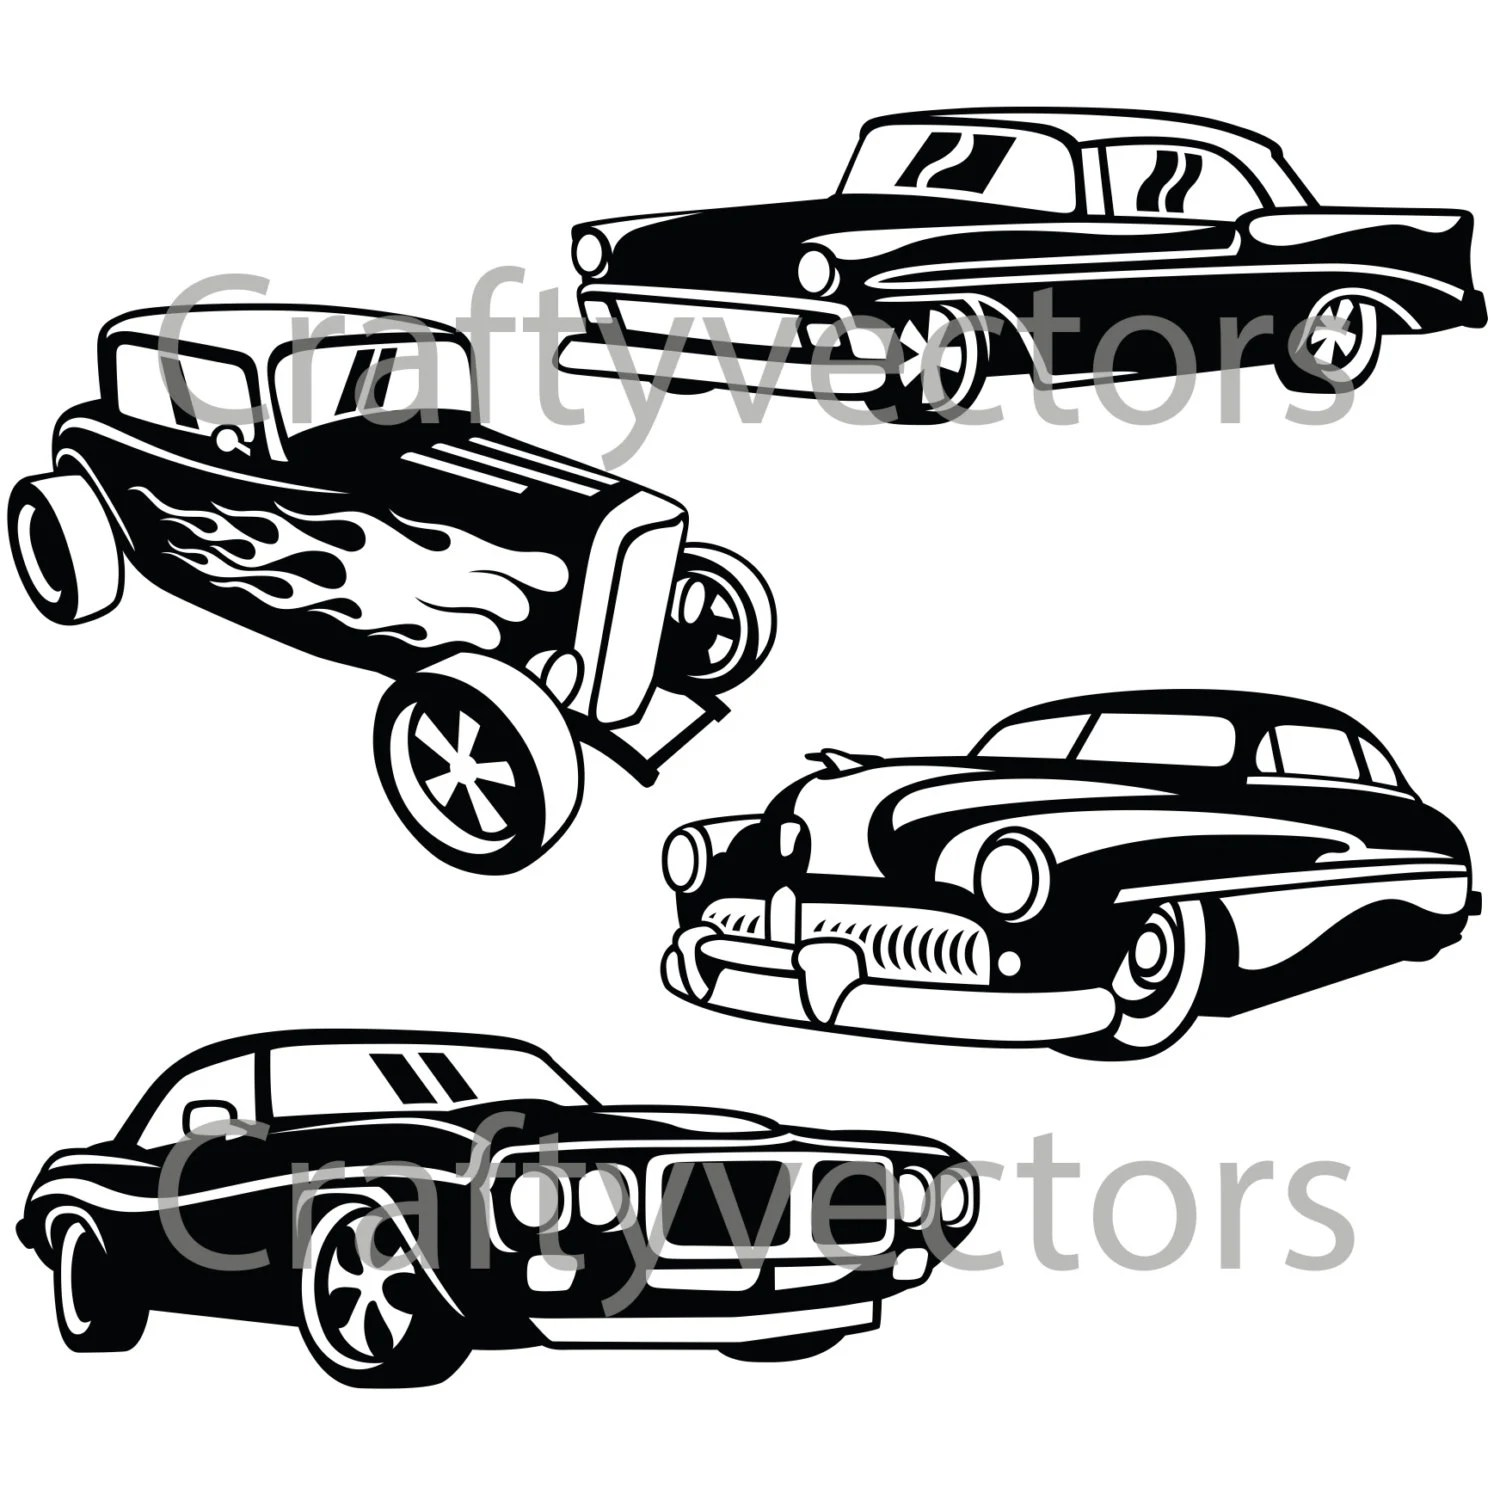 Hot Rod Cars 2 Svg Vector Files